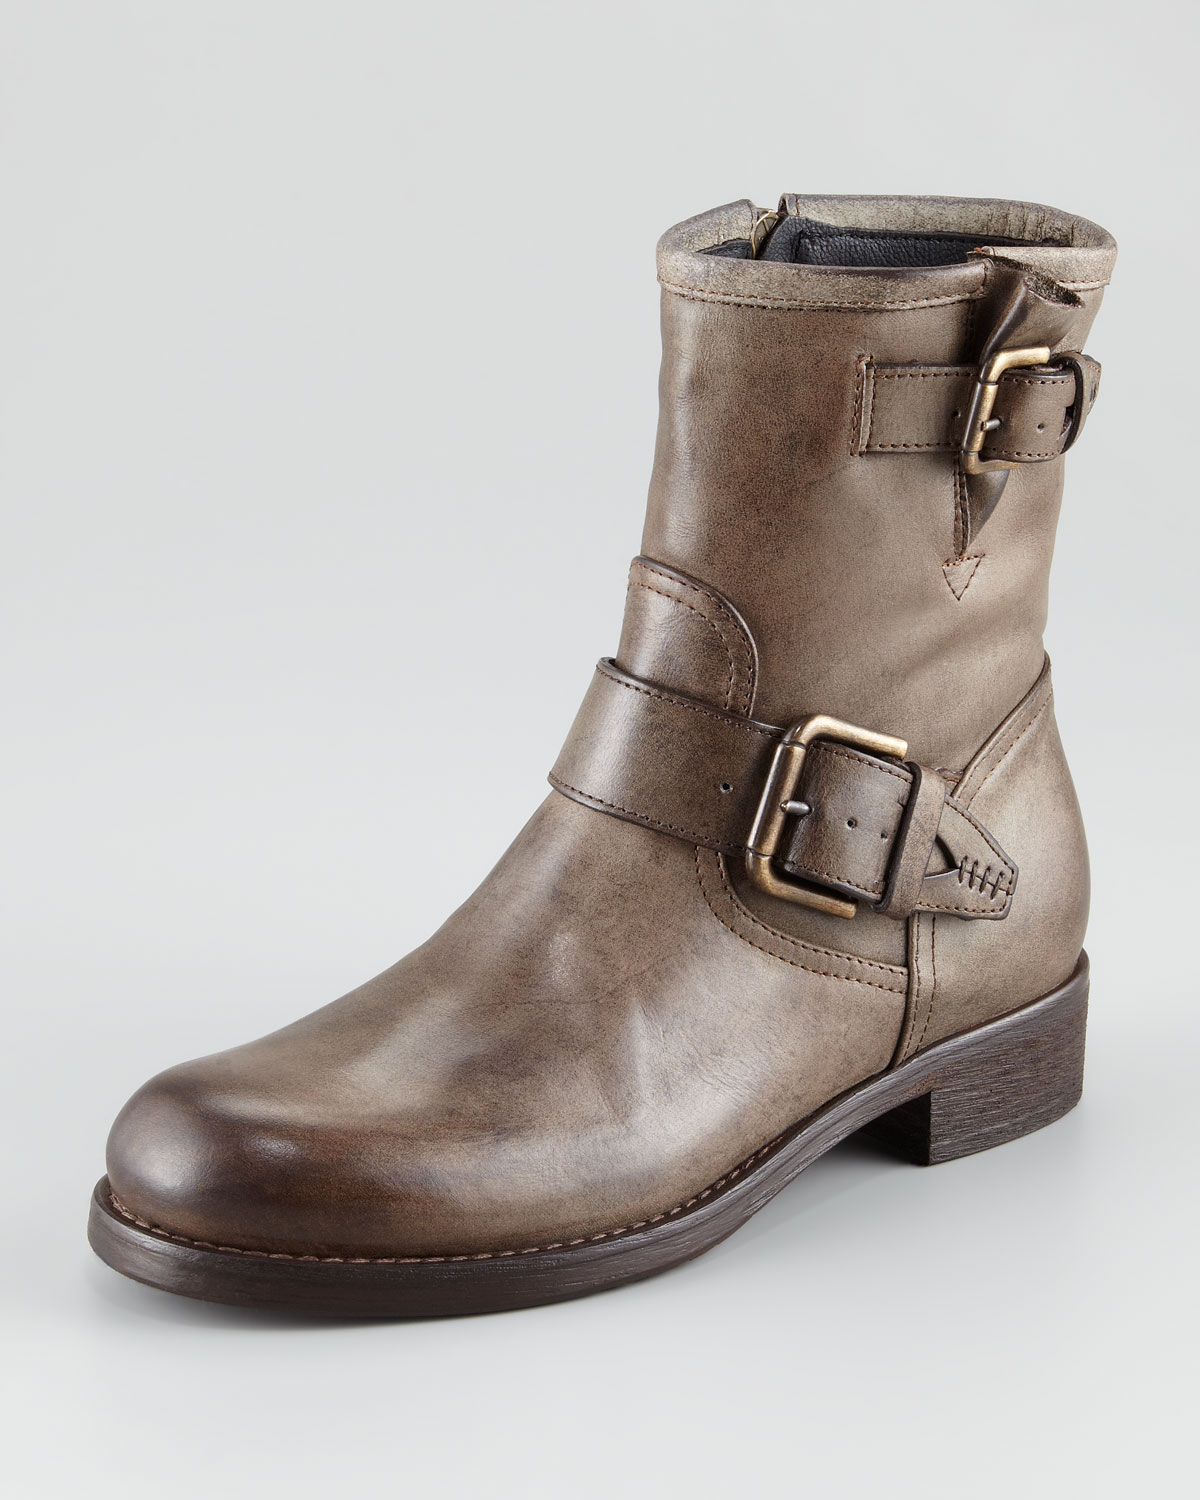 alberto fermani buckled leather moto boot in brown